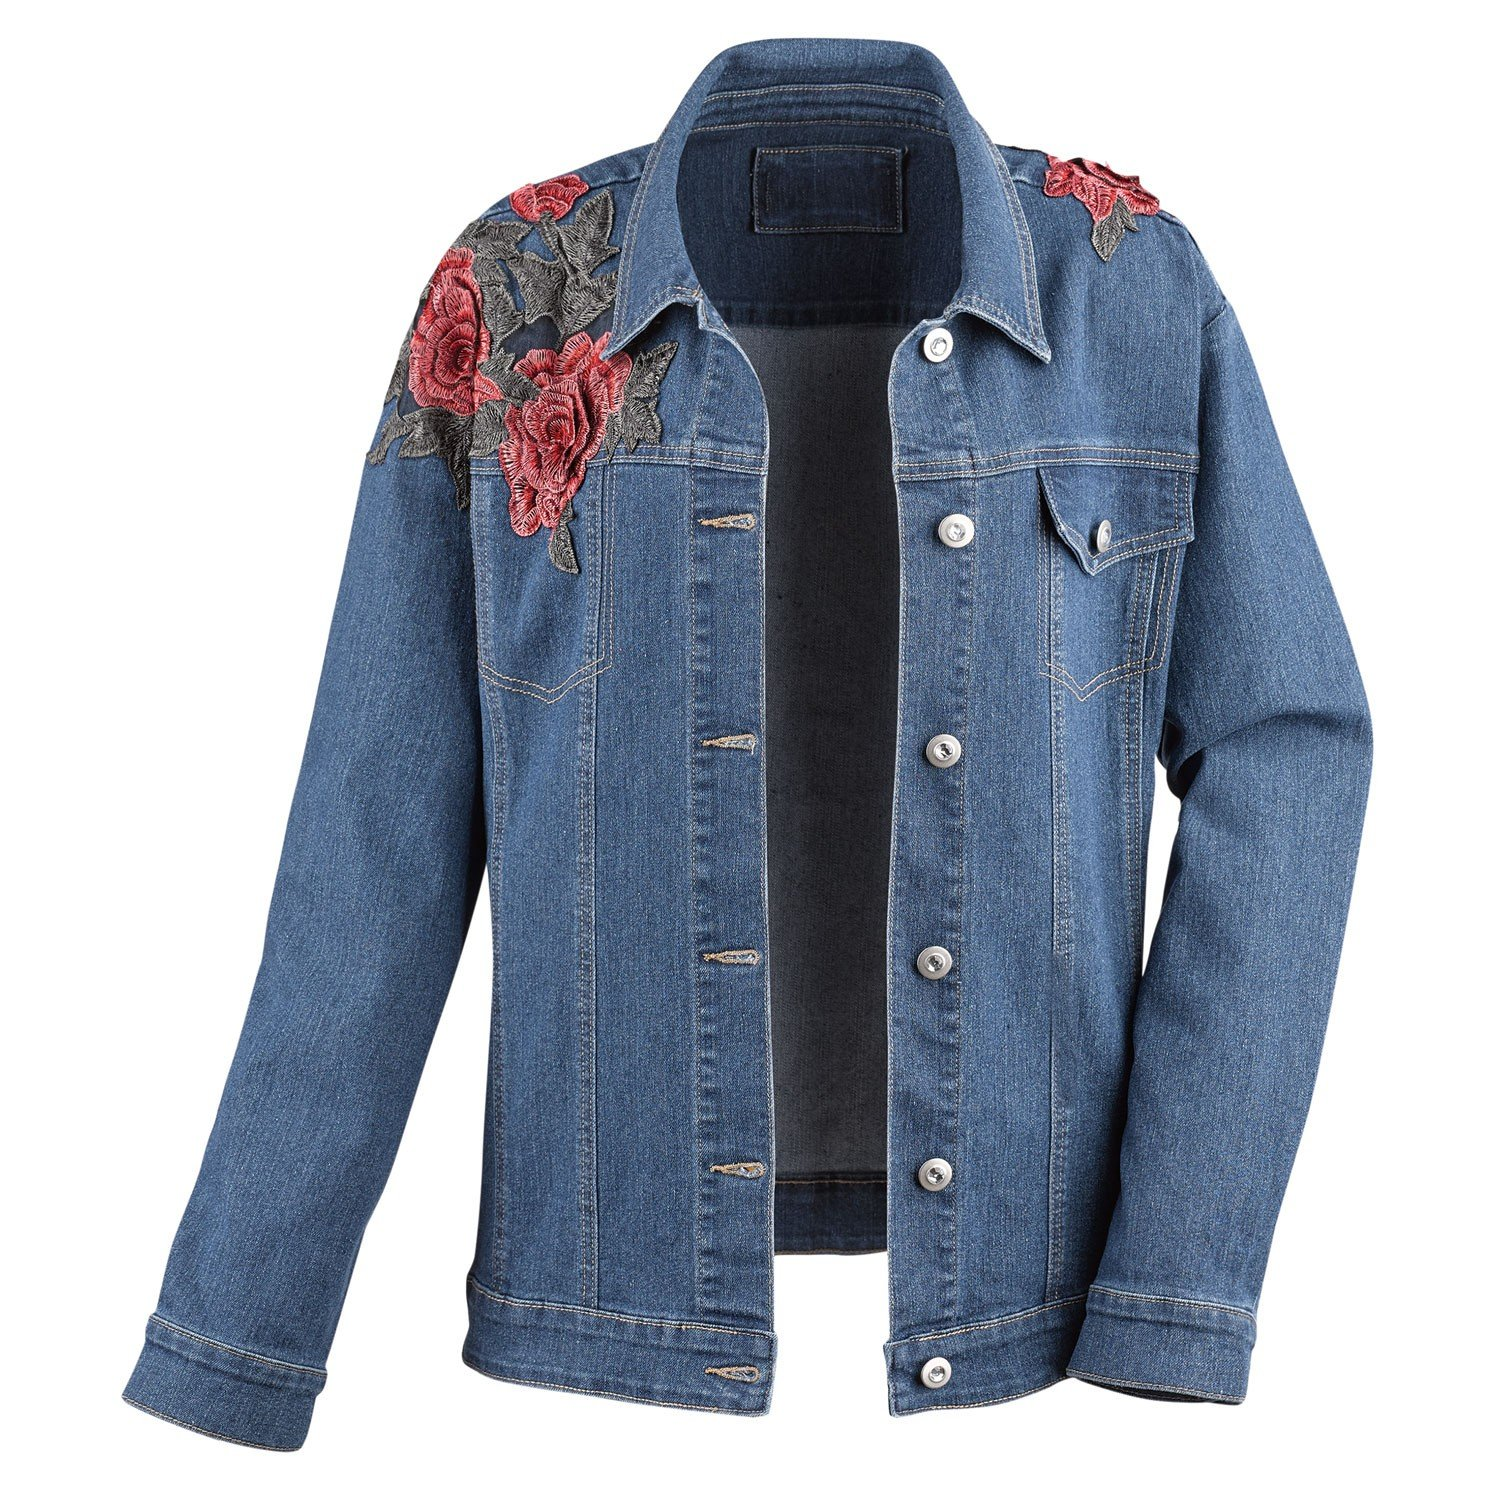 CATALOG CLASSICS Women's Denim Jacket -Loose Fit Floral Roses Embroidery & Crystal Accent Buttons - 1X